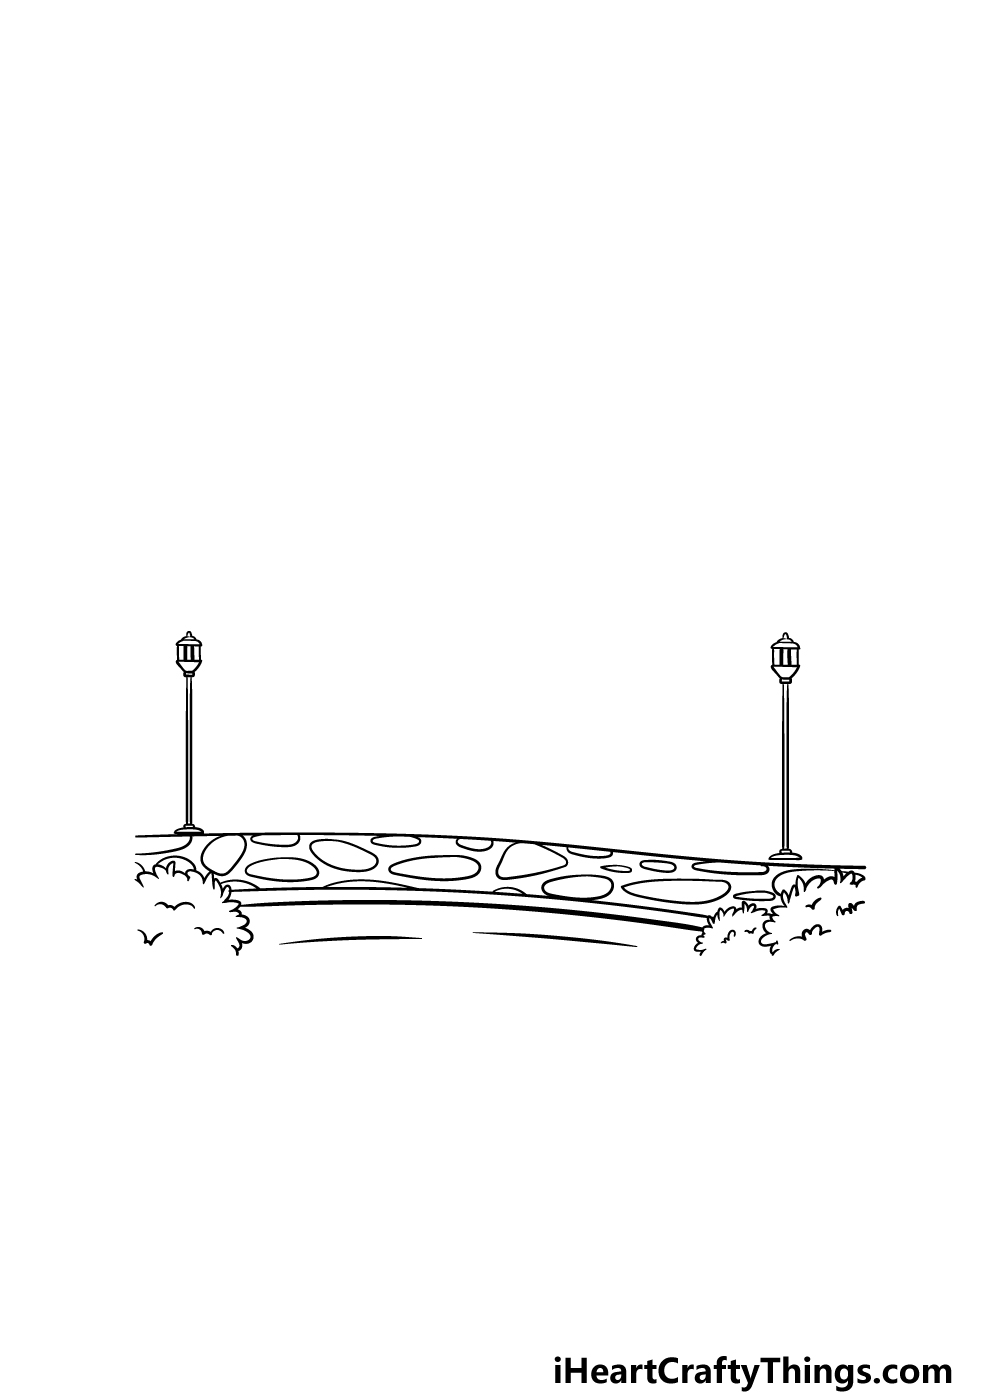 drawing a park step 2